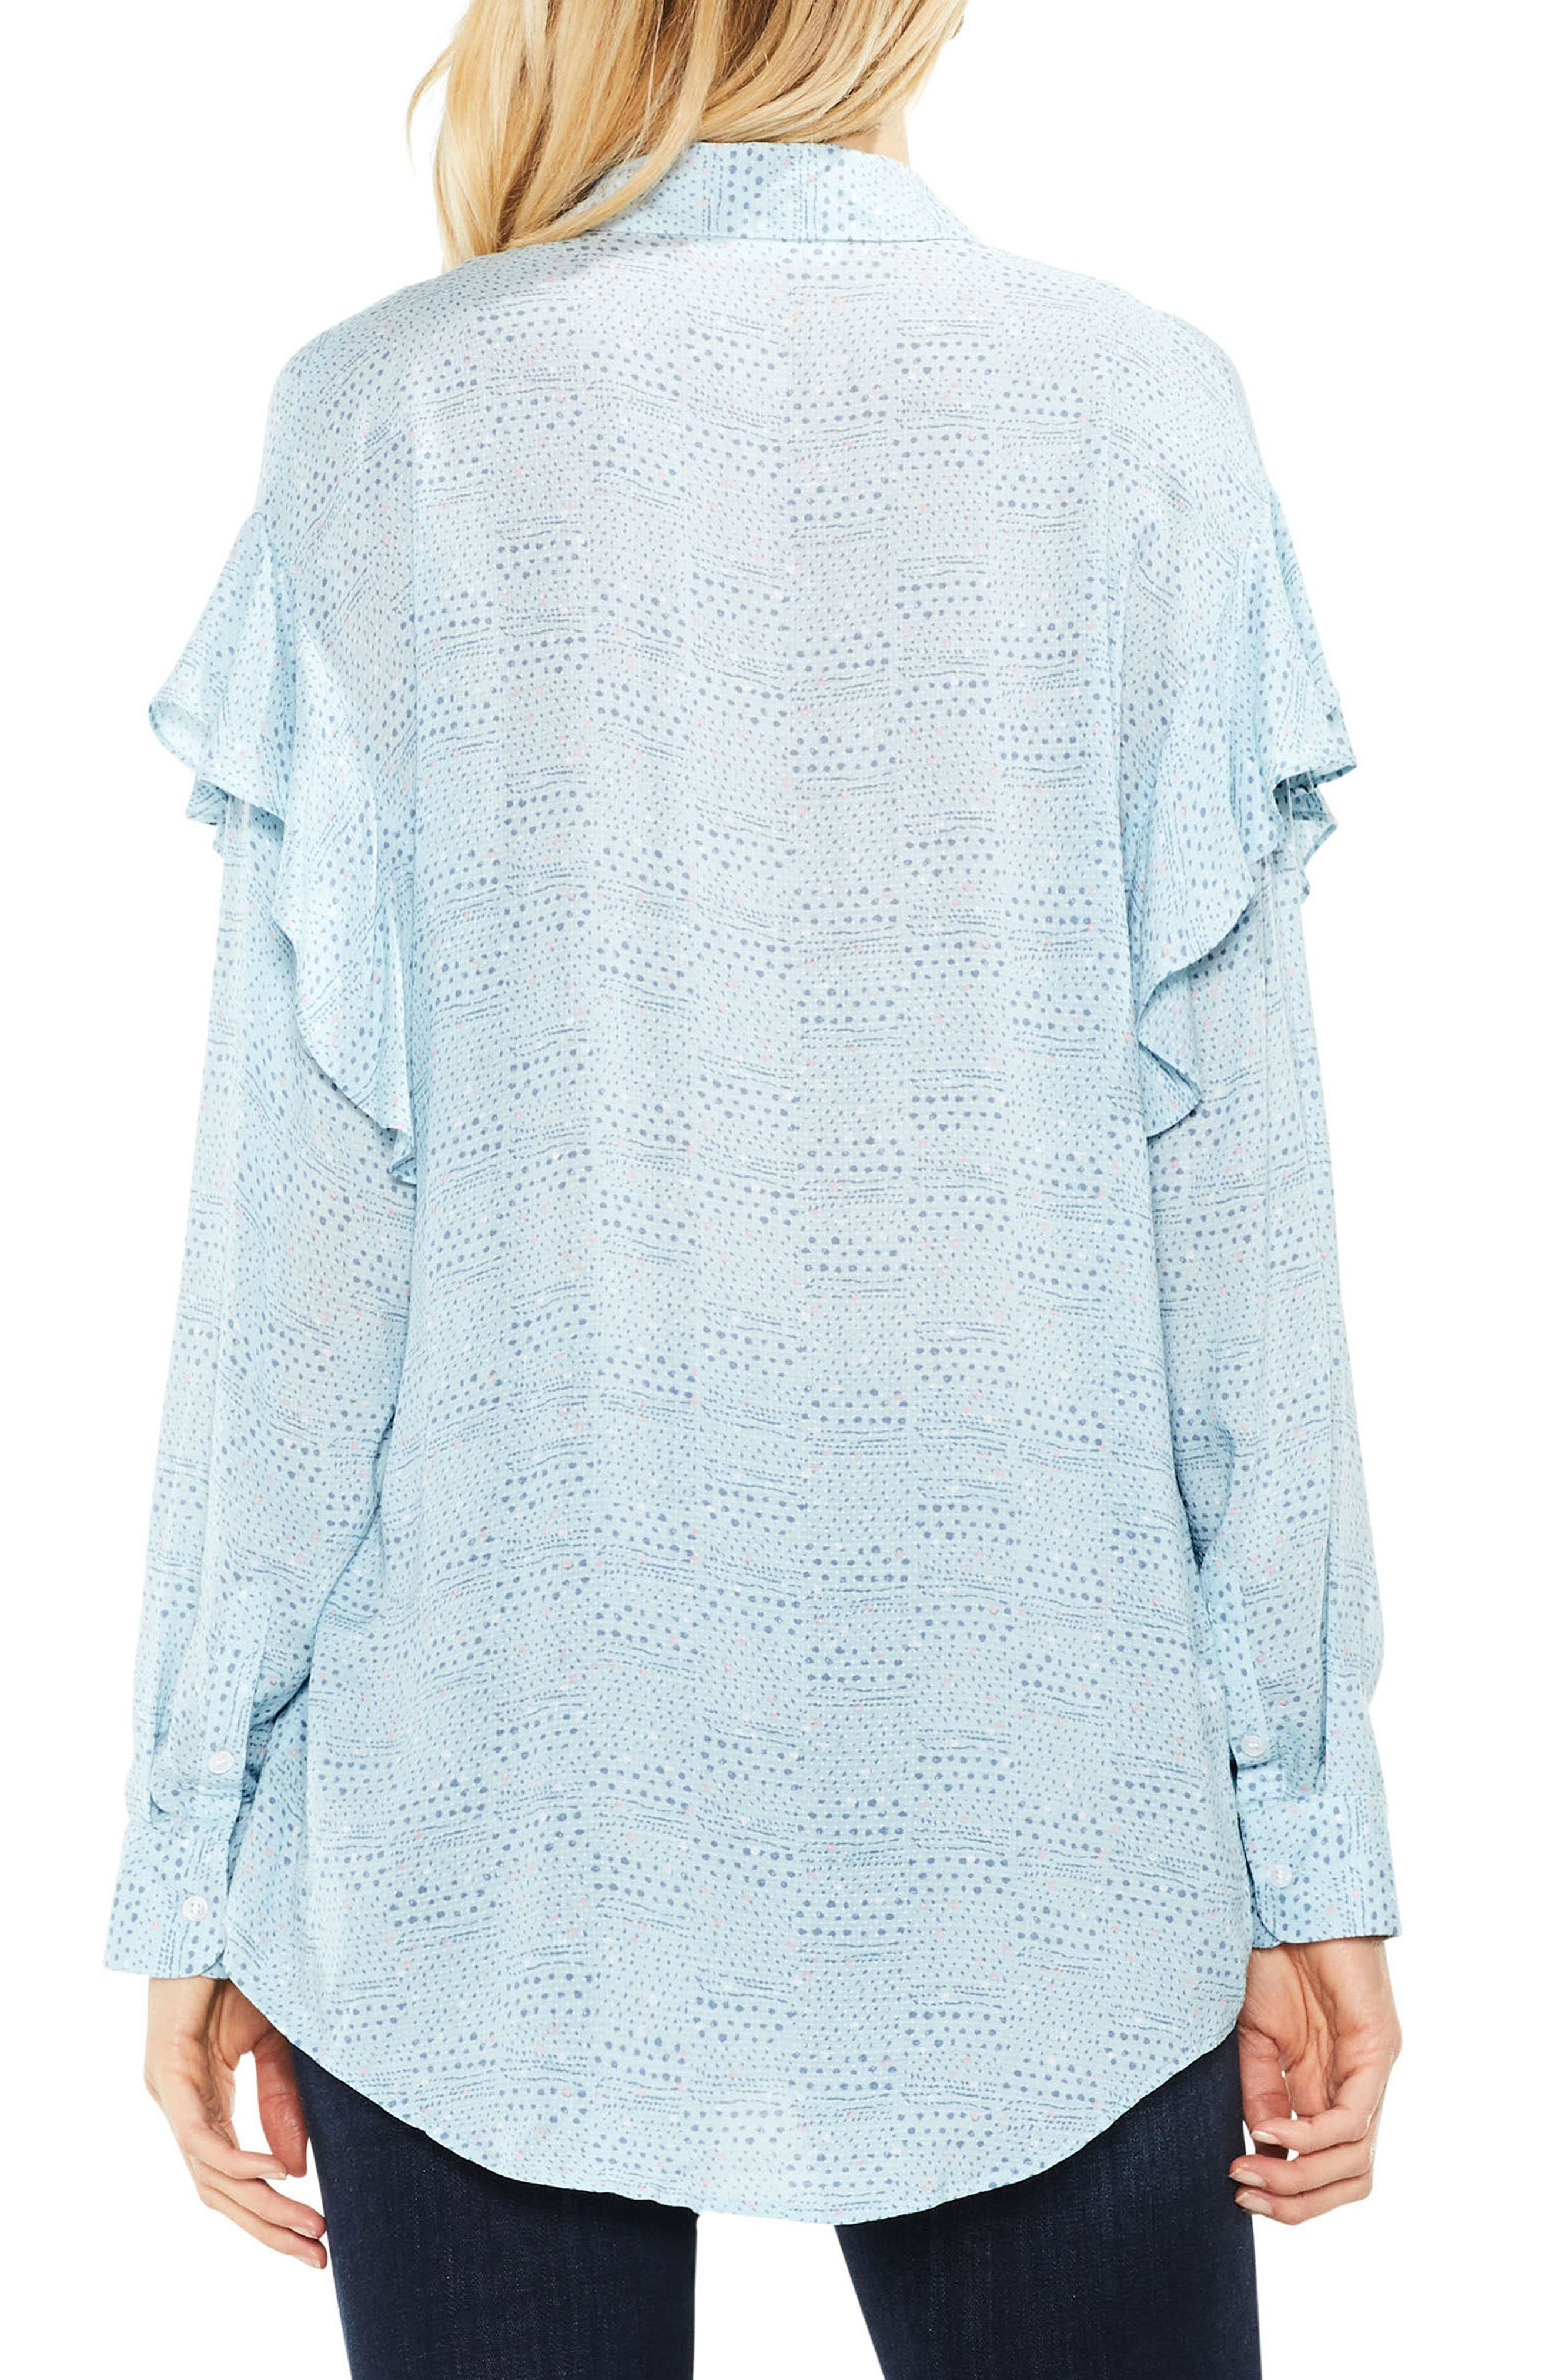 Two by Vince Camuto Ruffle Shoulder Top,                             Alternate thumbnail 2, color,                             Soft Skies